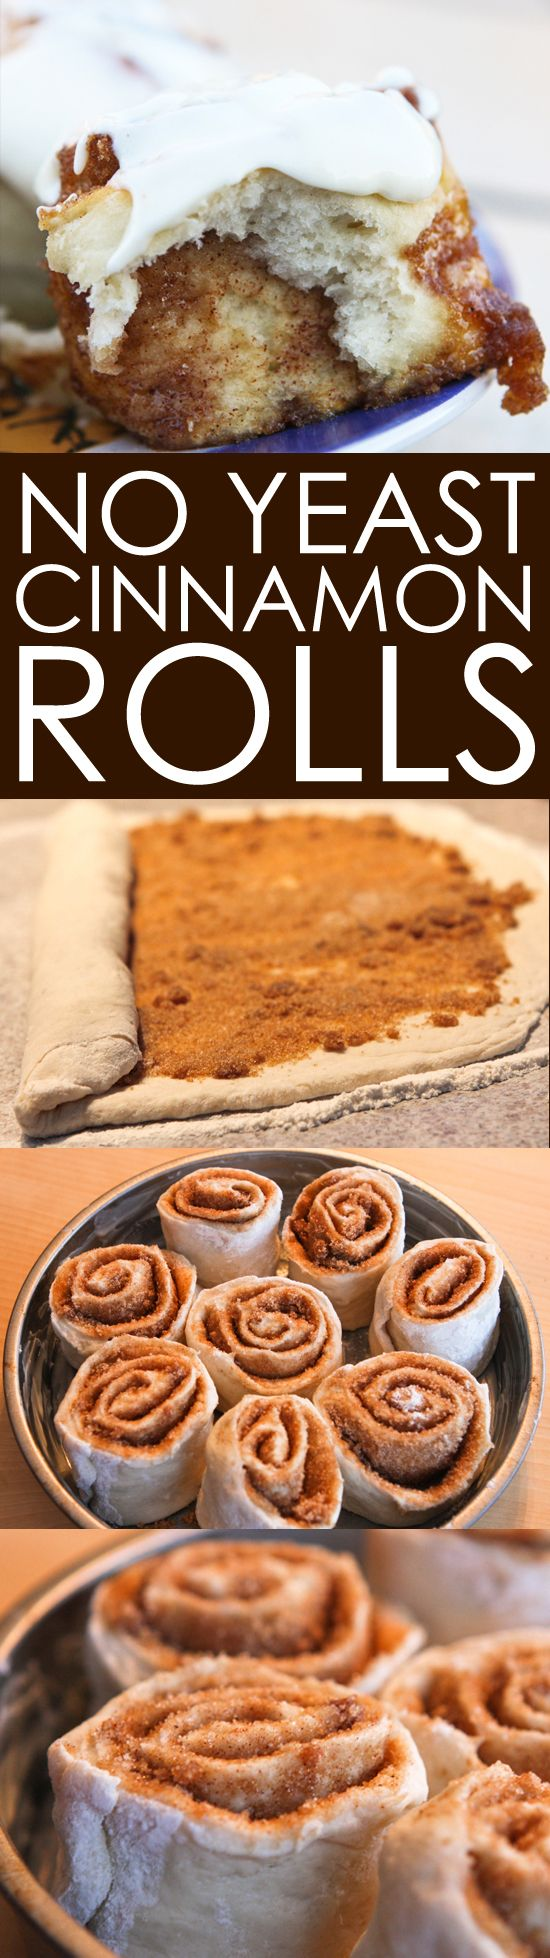 17 Best ideas about No Yeast Cinnamon Rolls on Pinterest ...